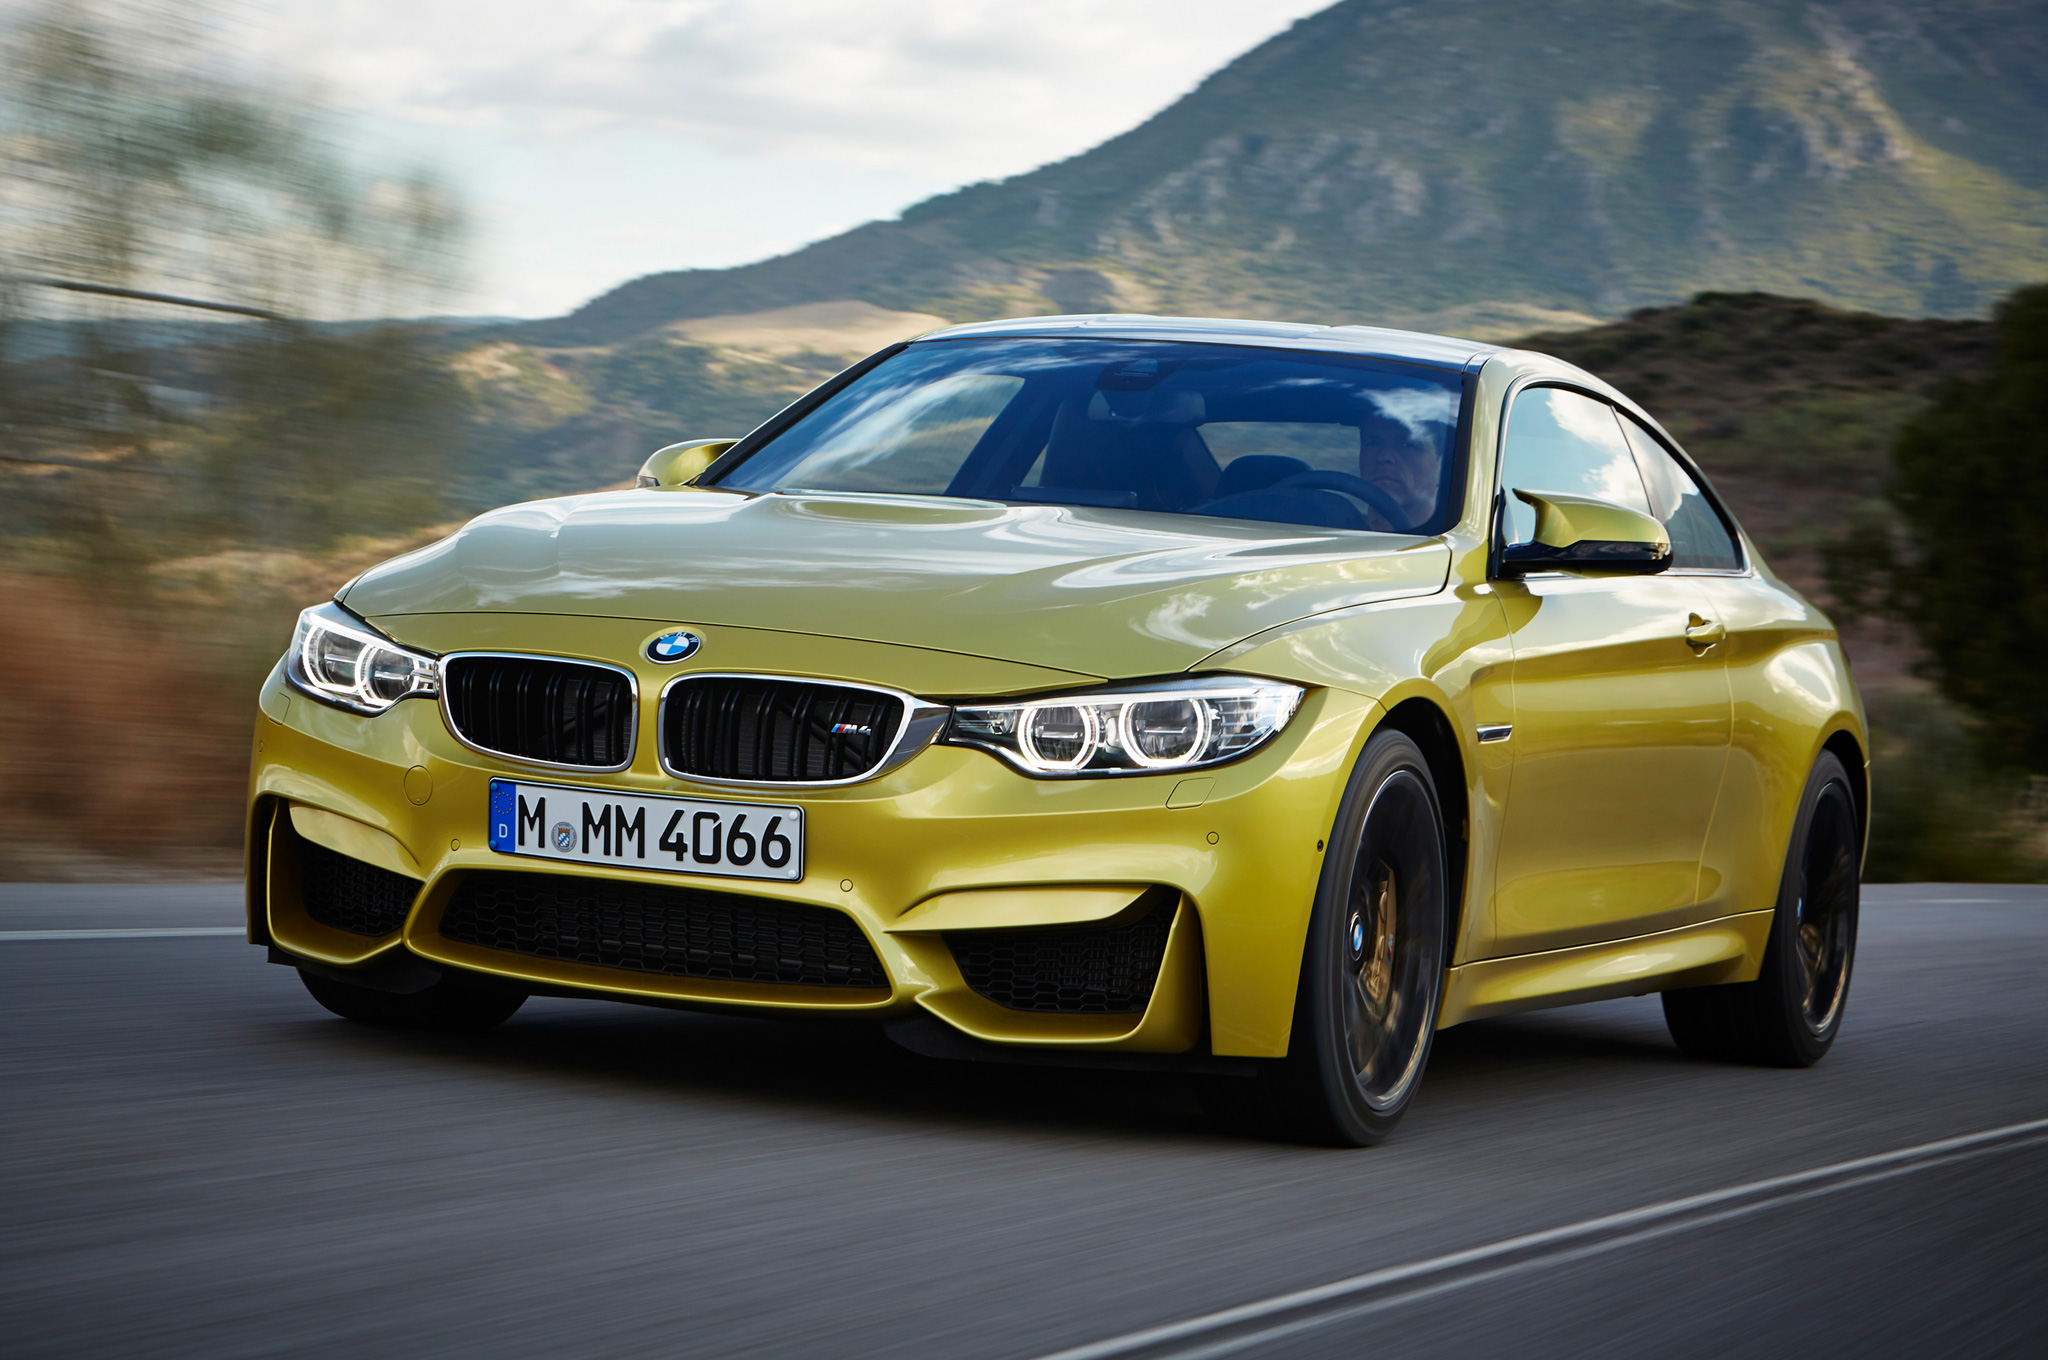 2015 Bmw M4 Road Test View (Photo 37 of 41)